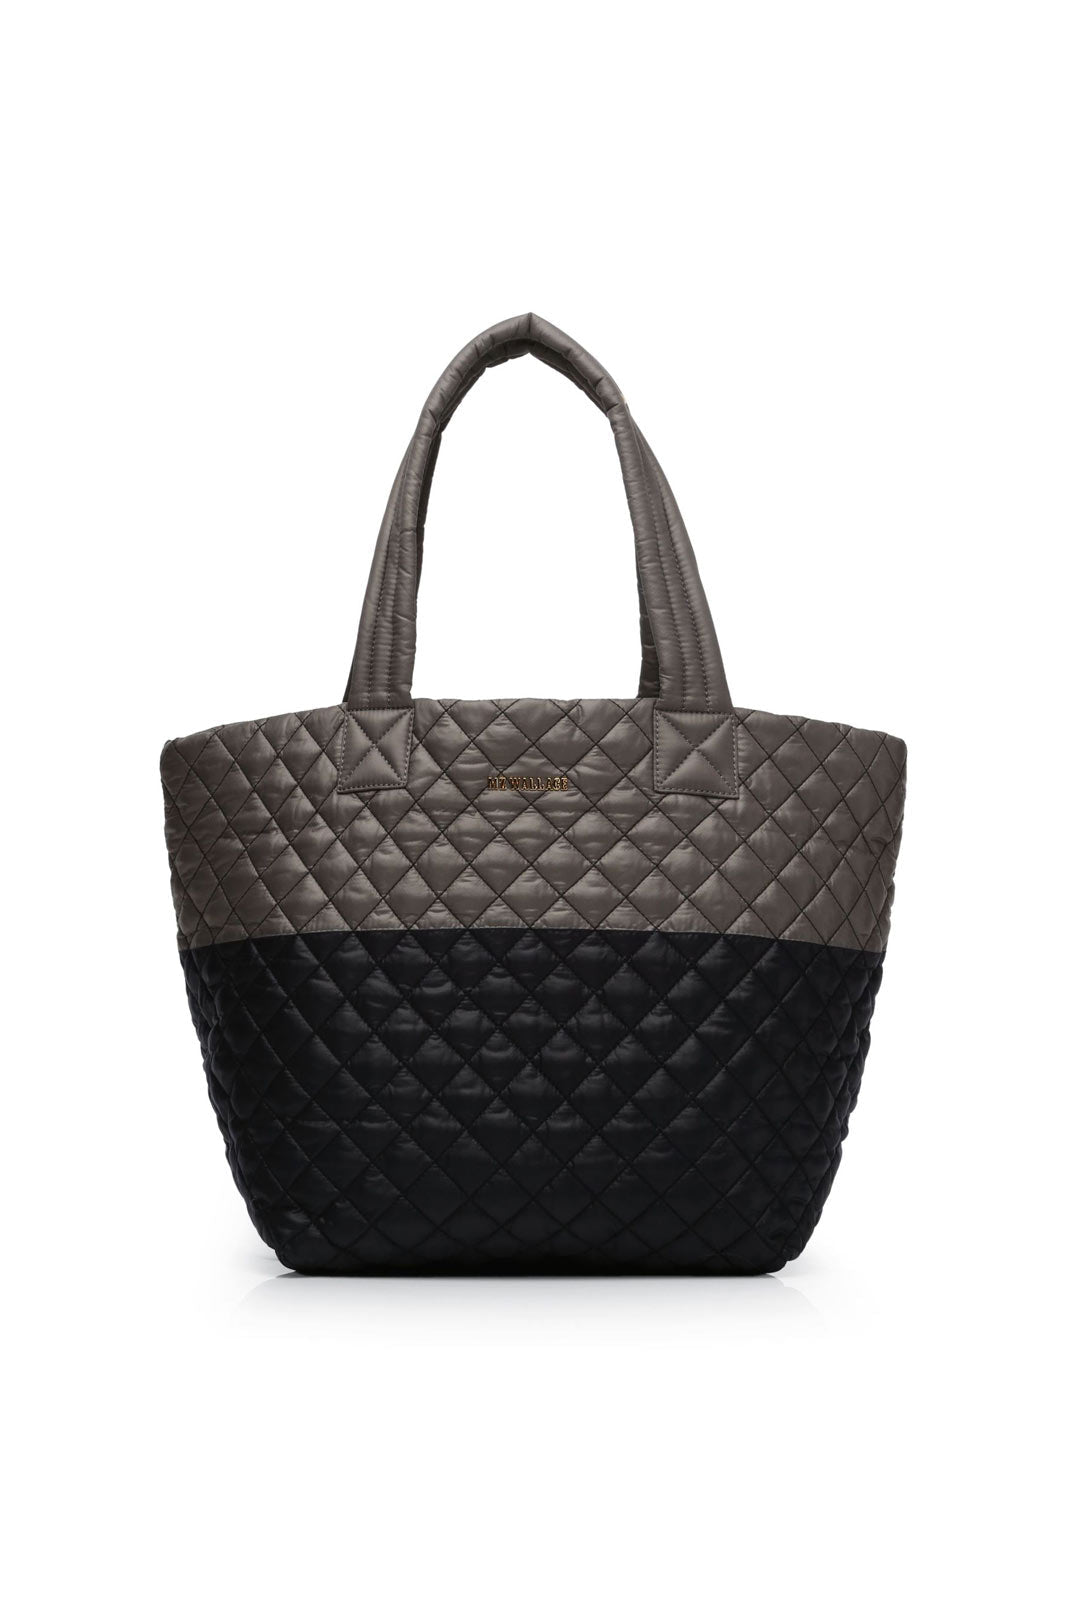 MZ Wallace Metro Tote Medium-Black/Magnet image 1 - The Sports Edit